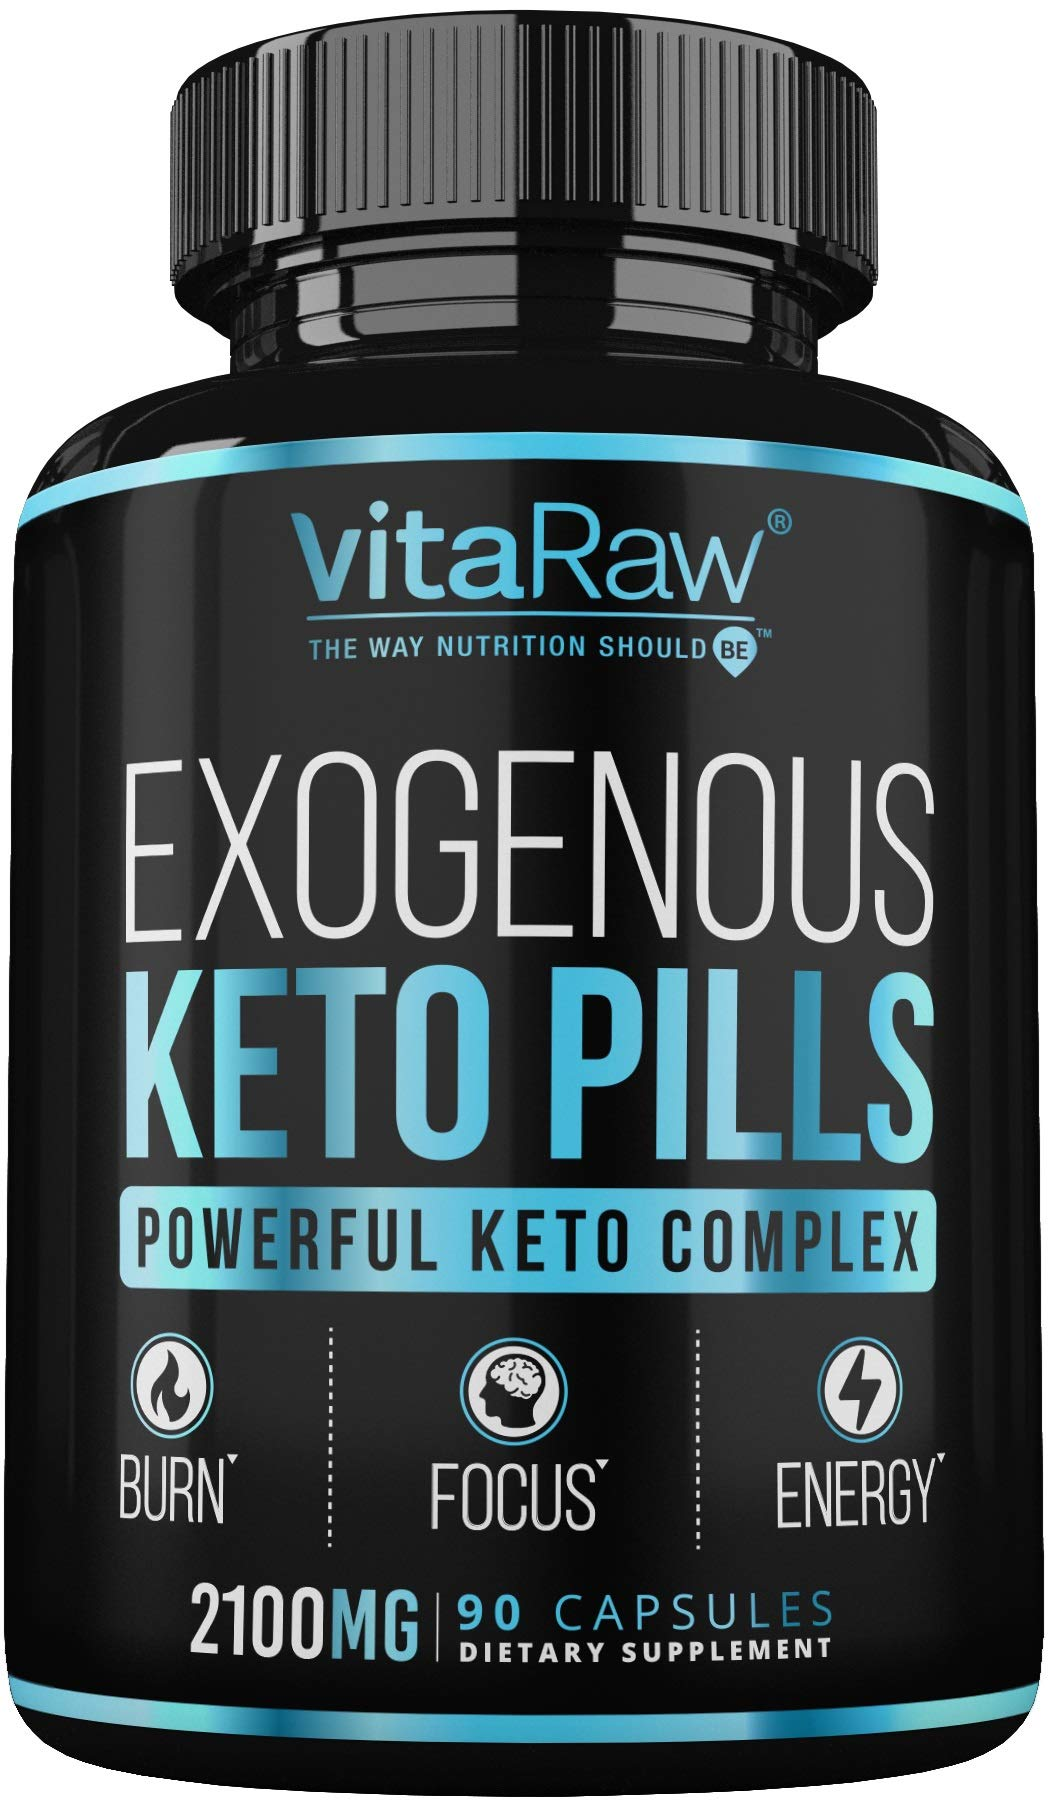 VitaRaw Exogenous Keto Pills – (3X Powerful Dose | 2100mg Keto BHB) Best Keto Burn Diet Pills – Advanced Ketones BHB…